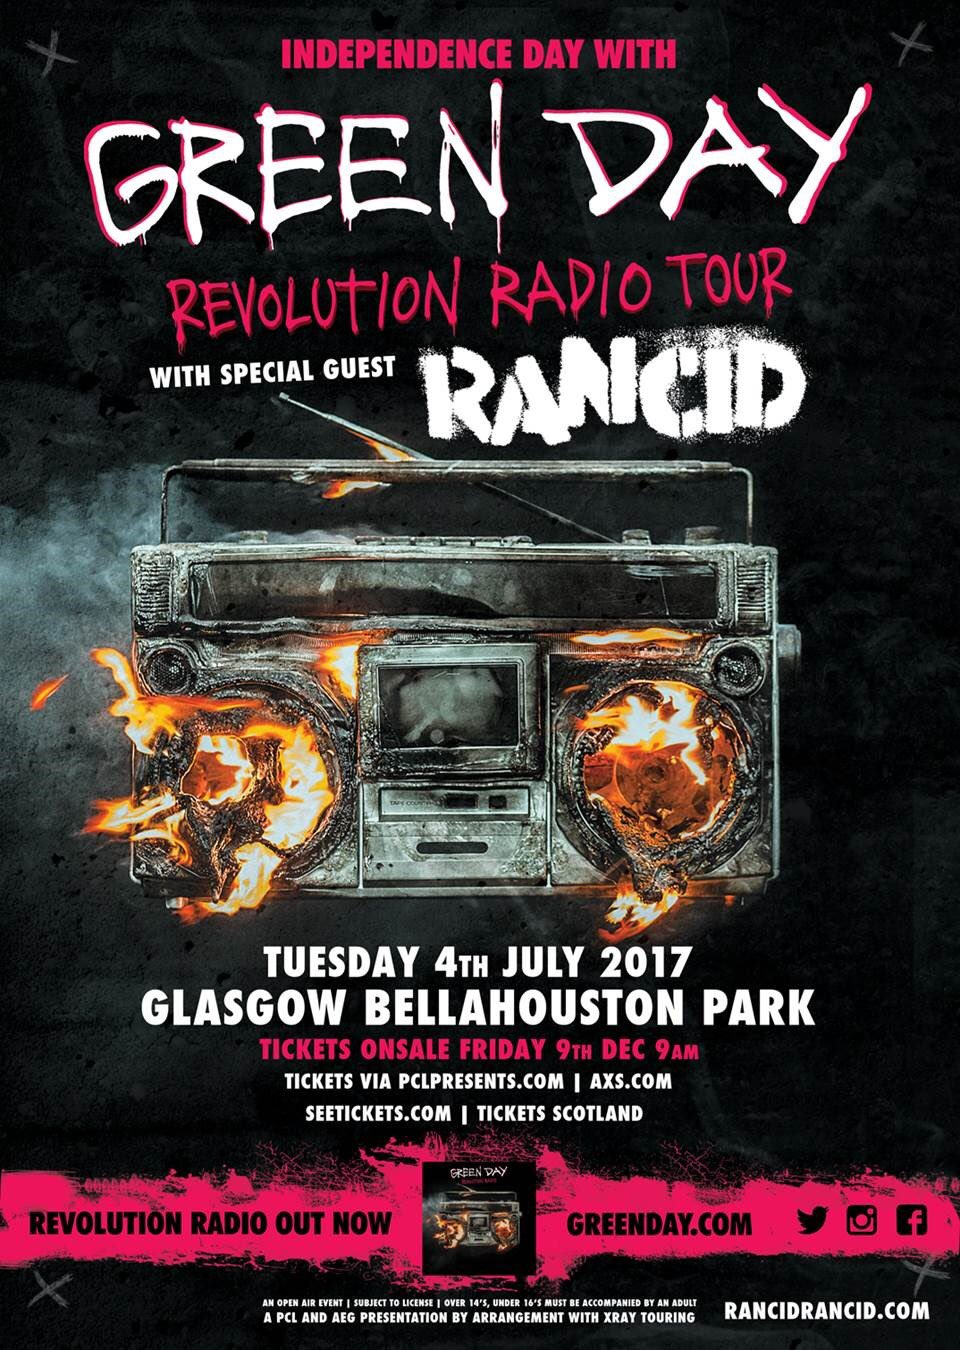 Green Day are coming to Glasgow July 4th, 2017. More info and tickets: https://t.co/VIdpOQ5uEd https://t.co/CFJ8QyKP2s